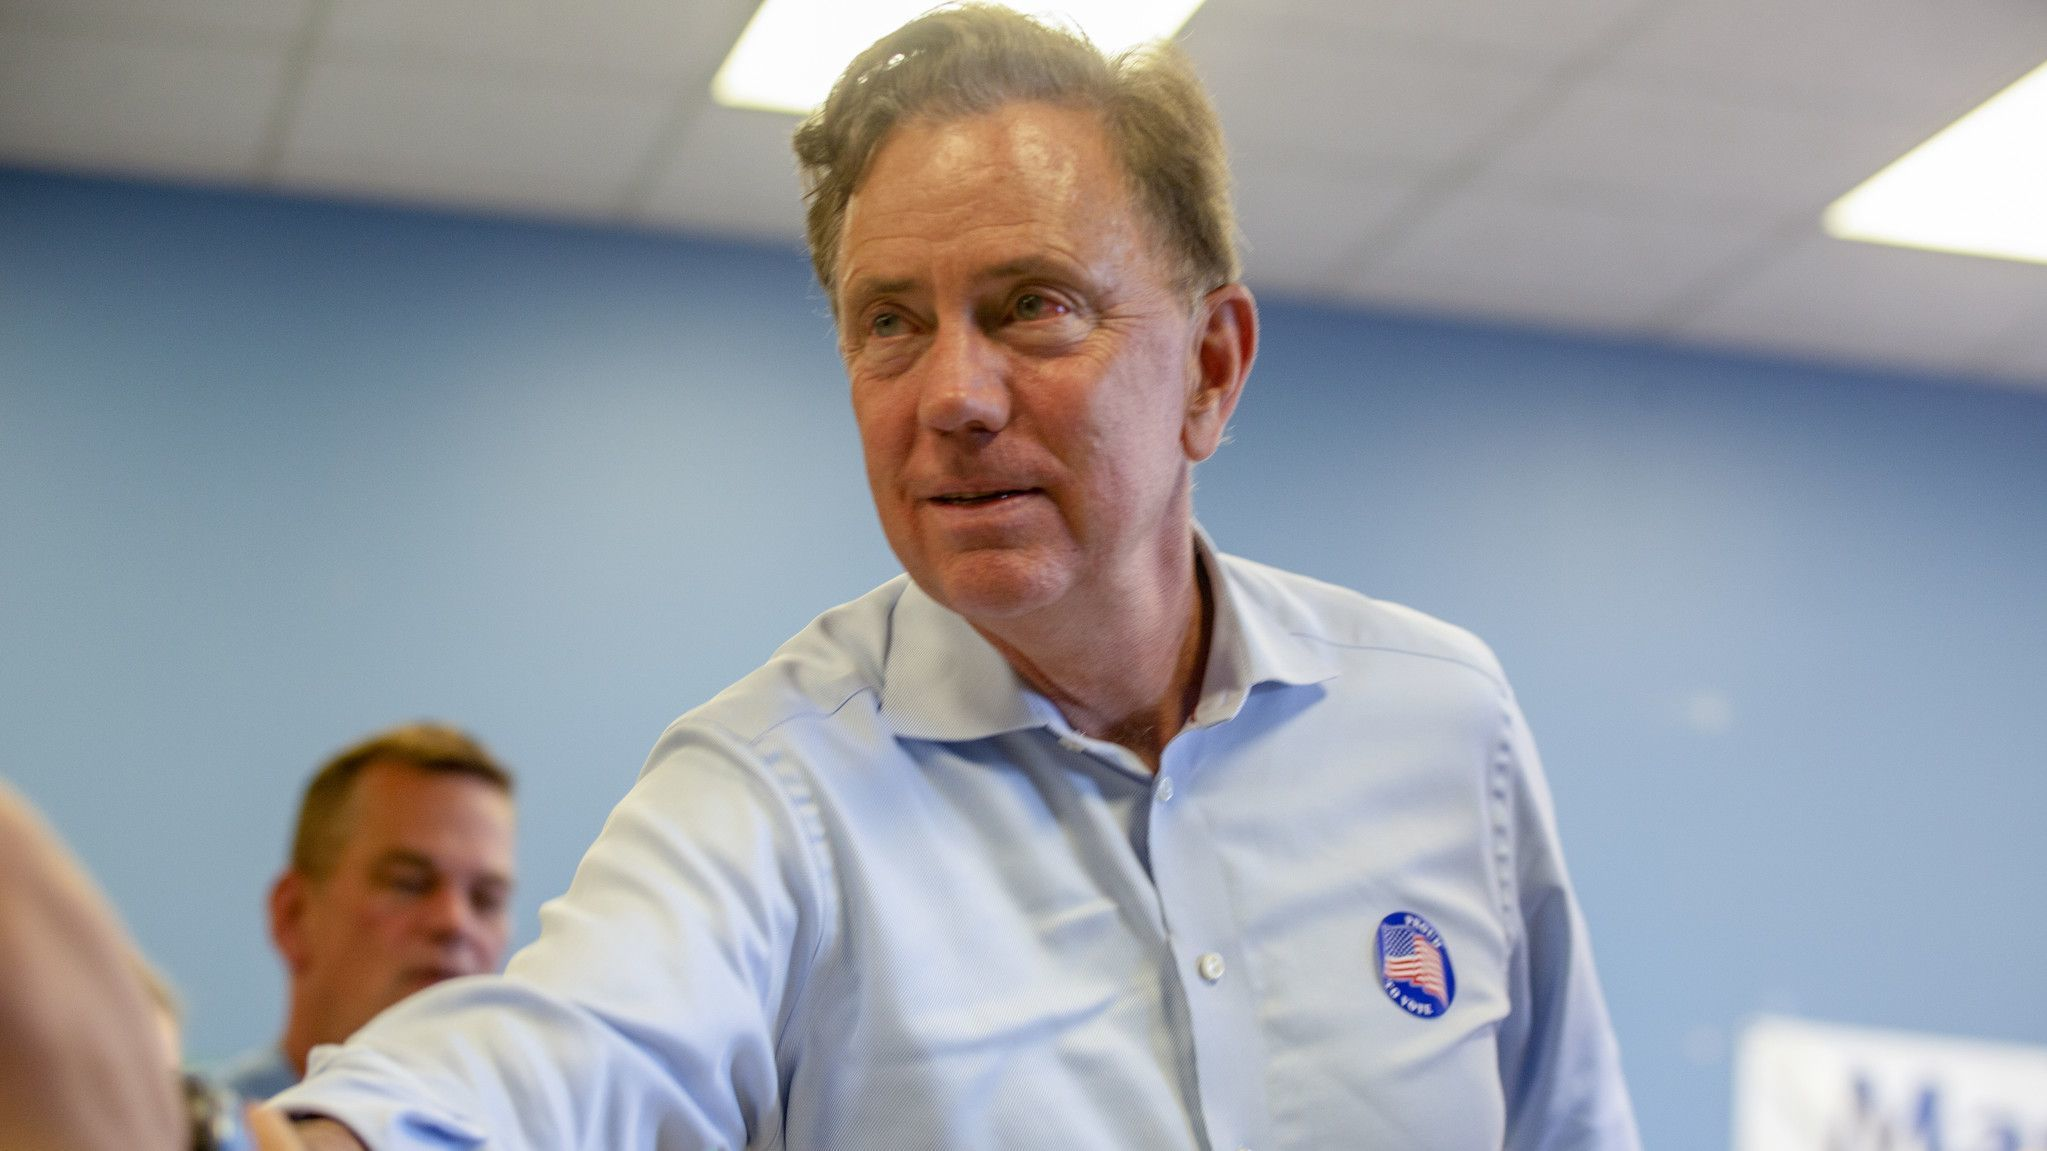 Ned Lamont Defeats Joe Ganim To Win Democratic Primary For Governor | Hartford Courant